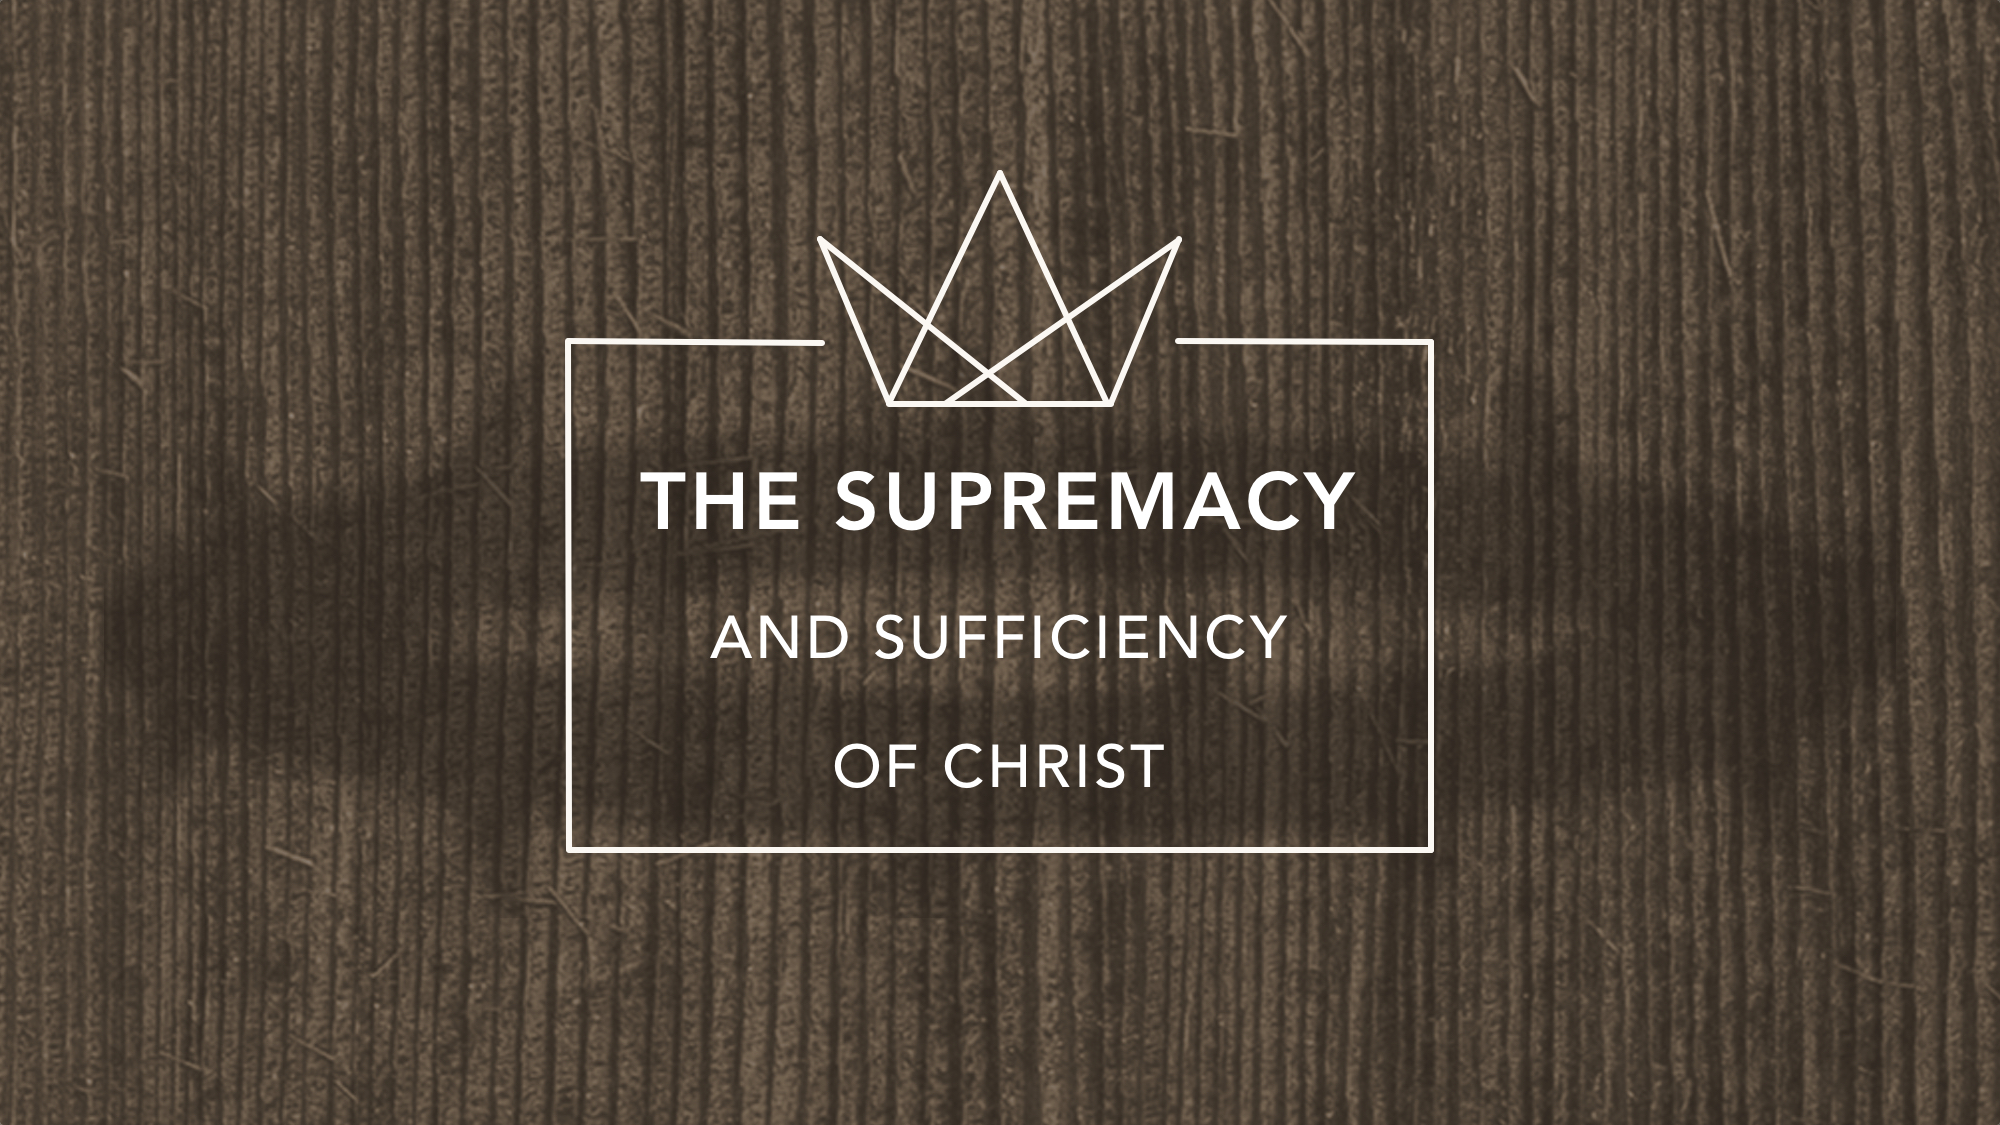 The Supremacy and Sufficiency of Christ